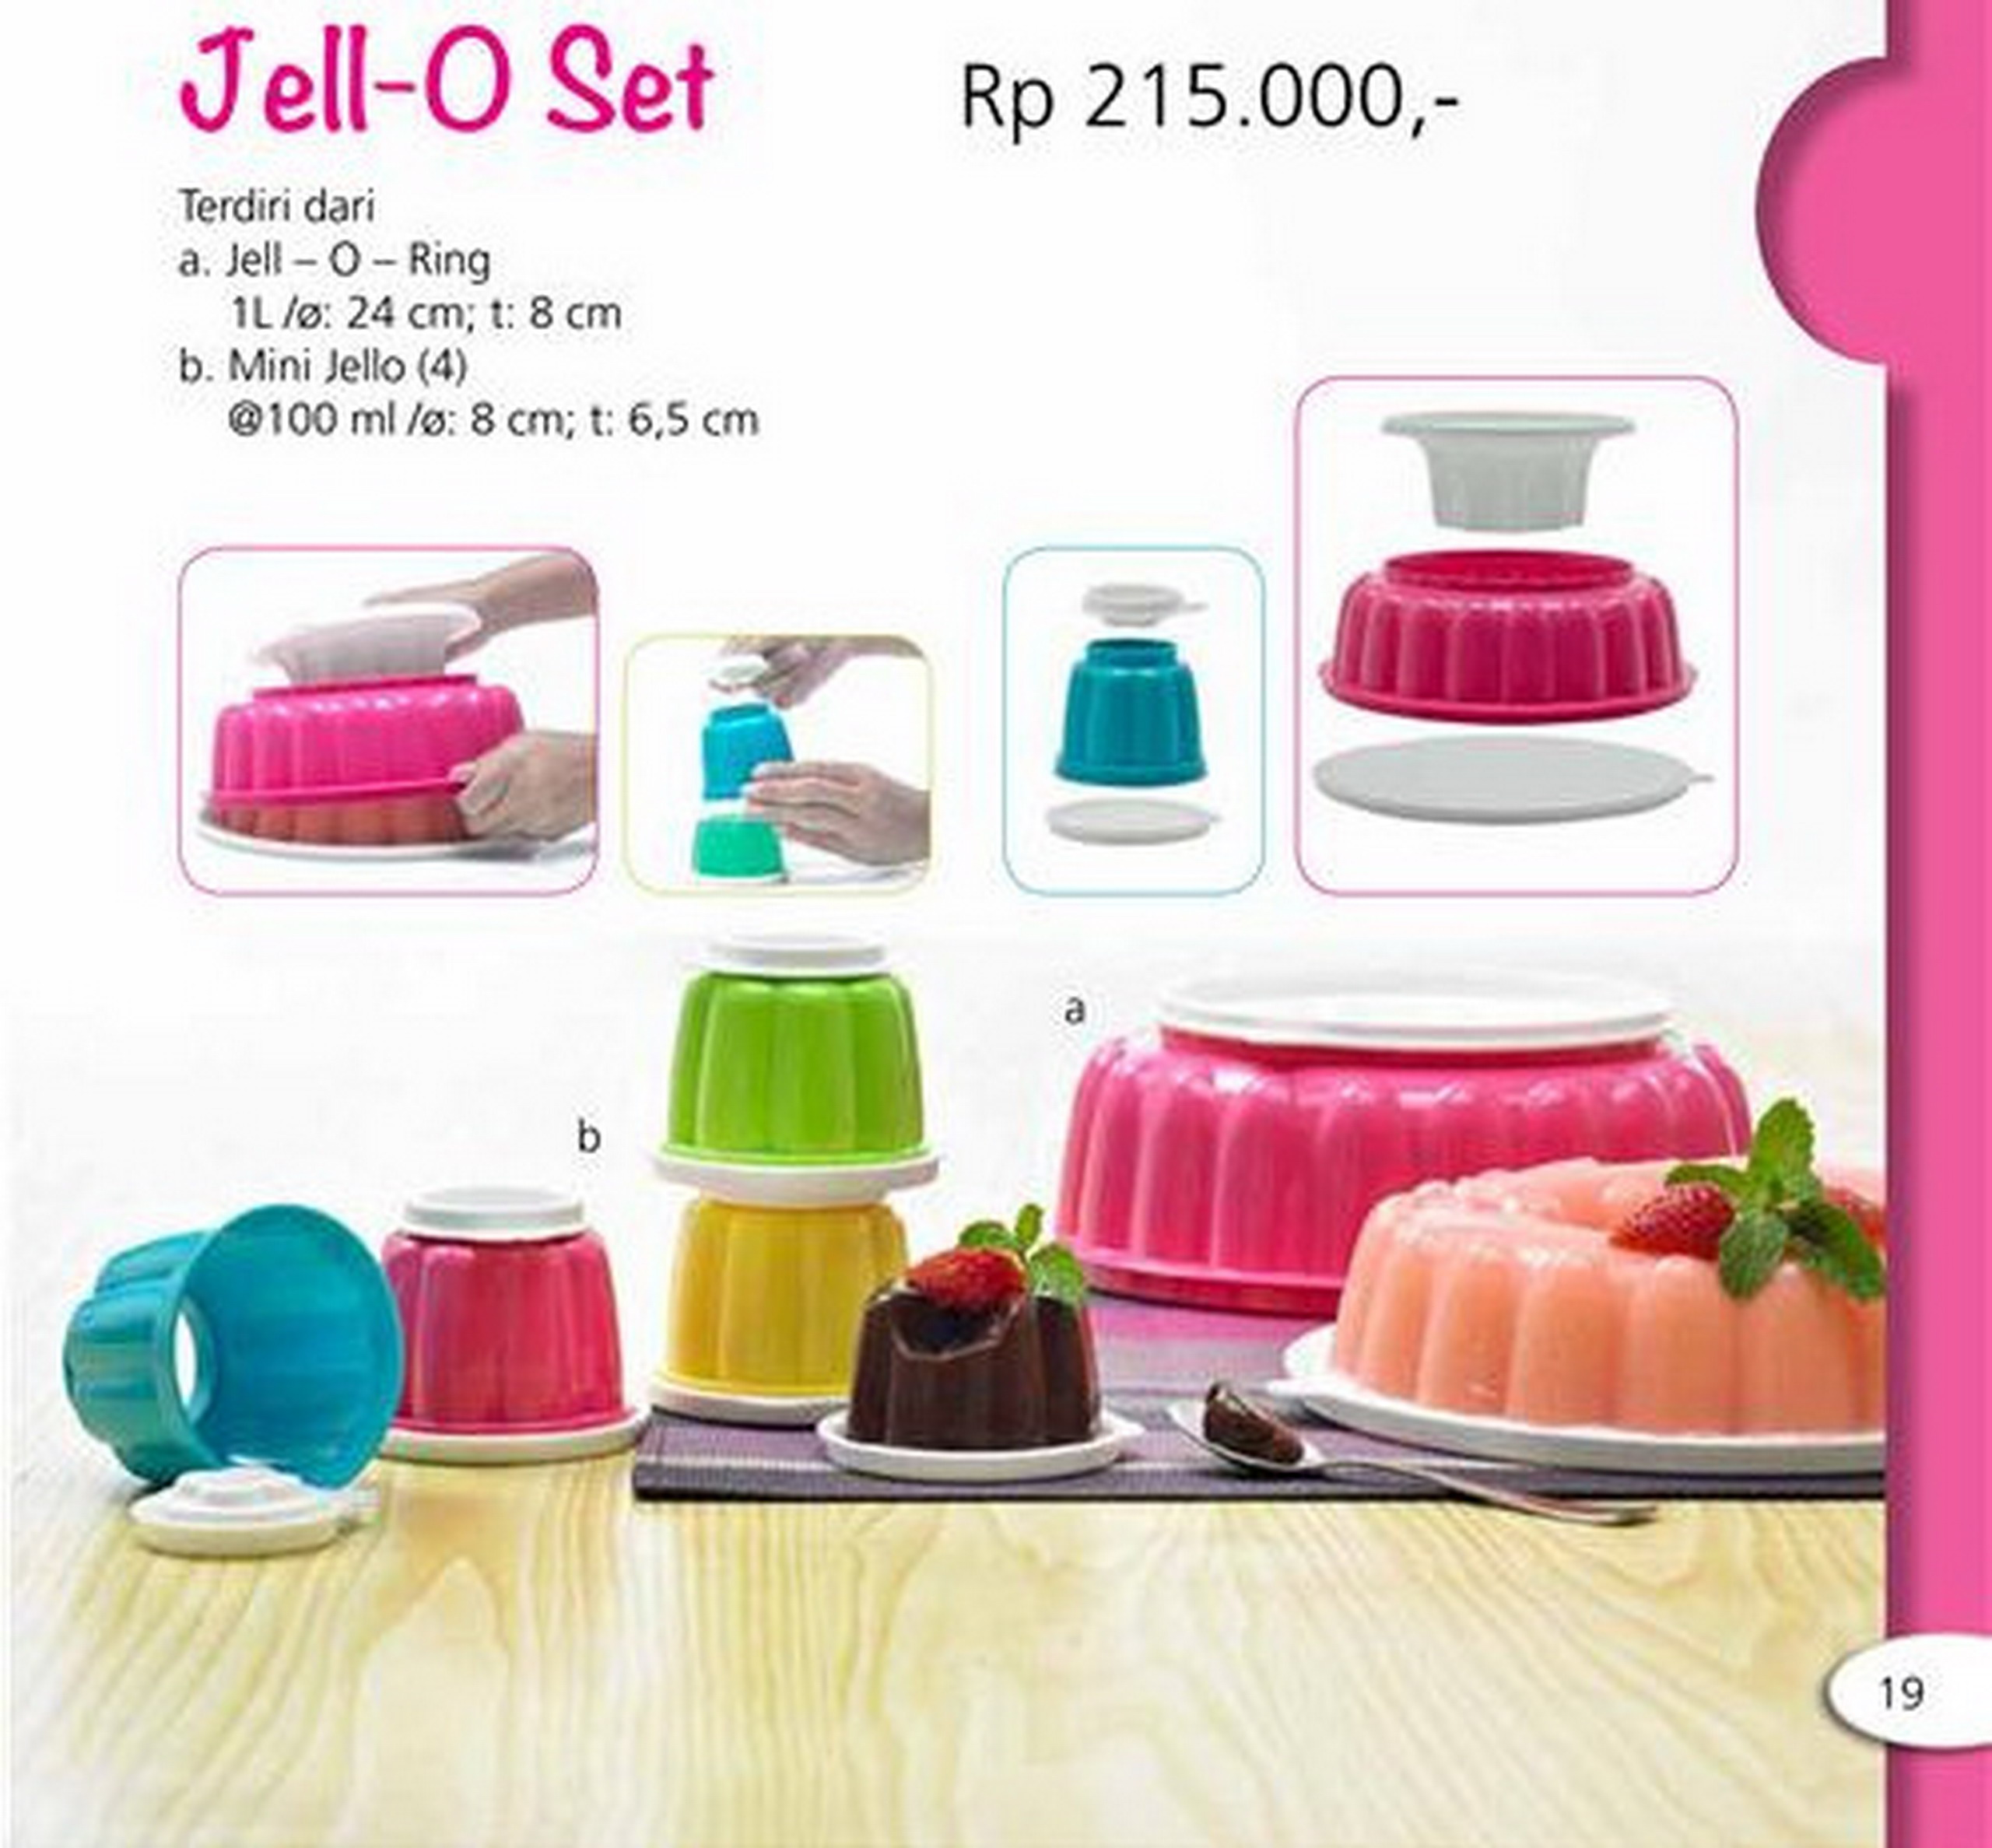 http://freetupperware.files.wordpress.com/2013/08/tupperware-jell-o-set1.jpg